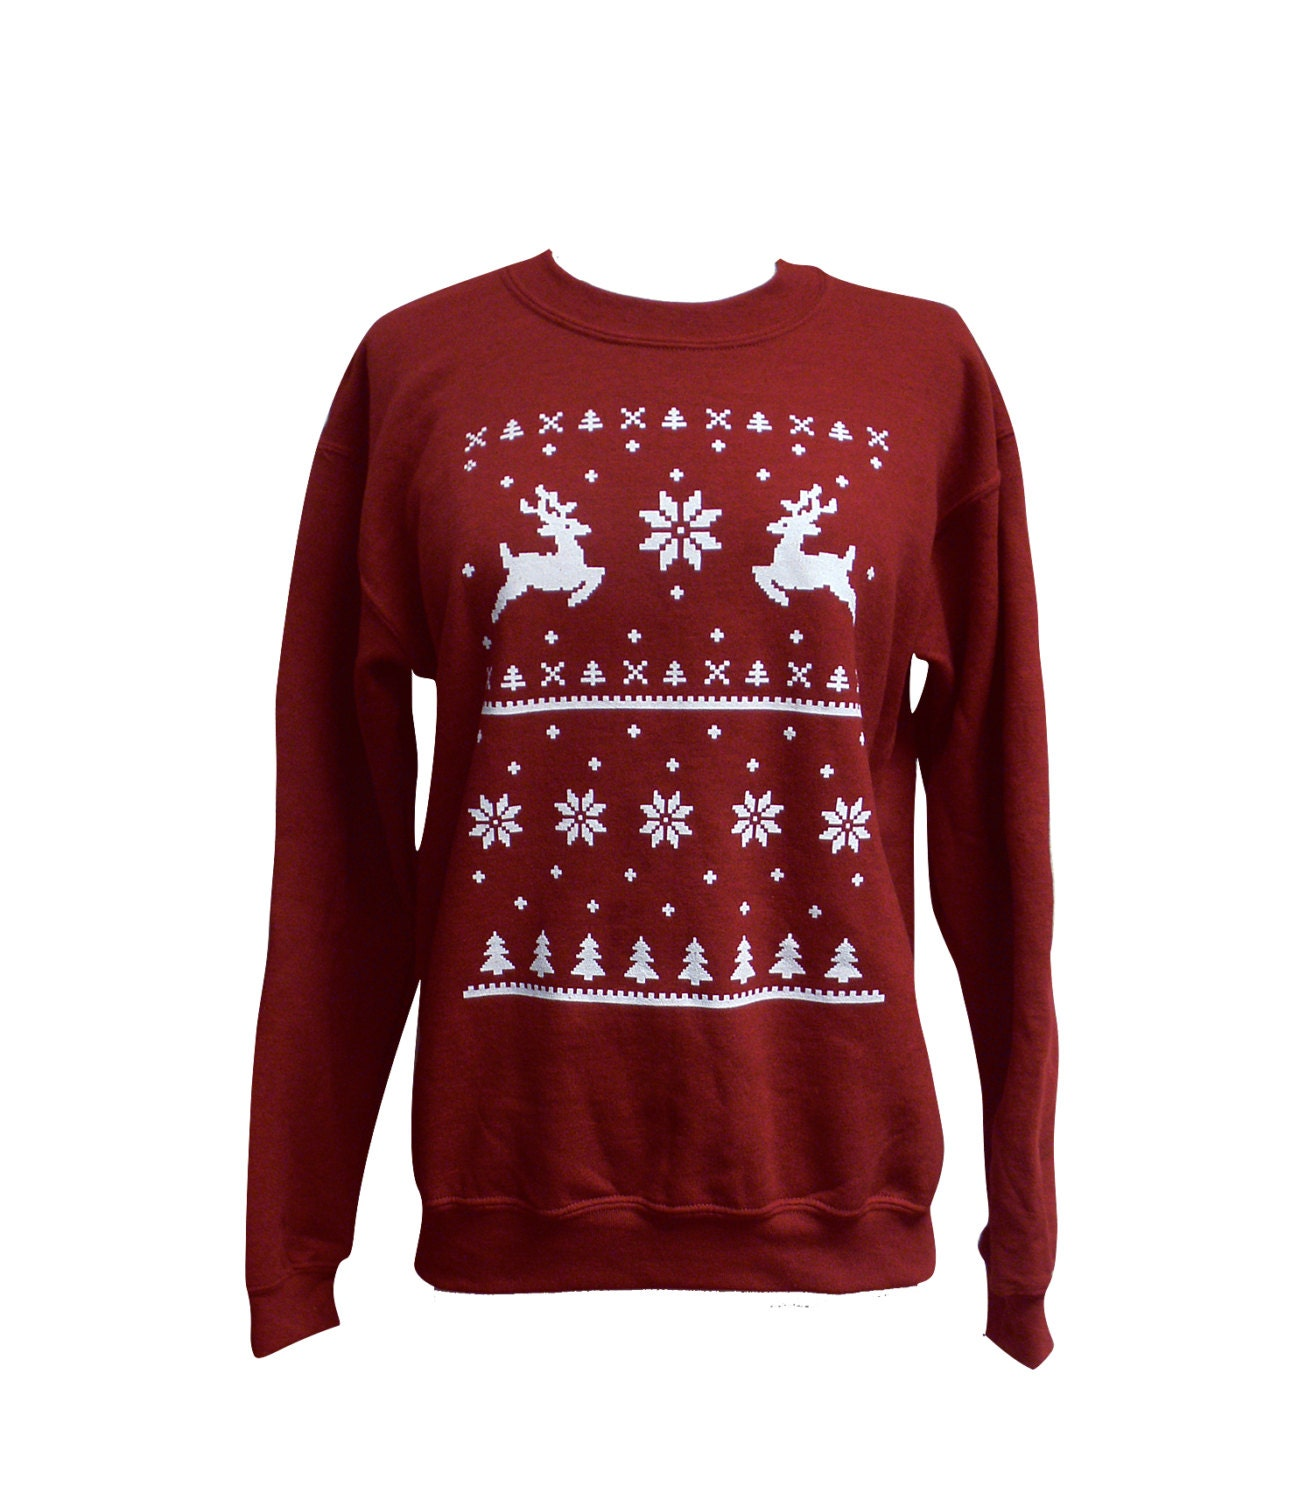 Deer Ugly Christmas Sweater Reindeer Sweatshirt Unisex